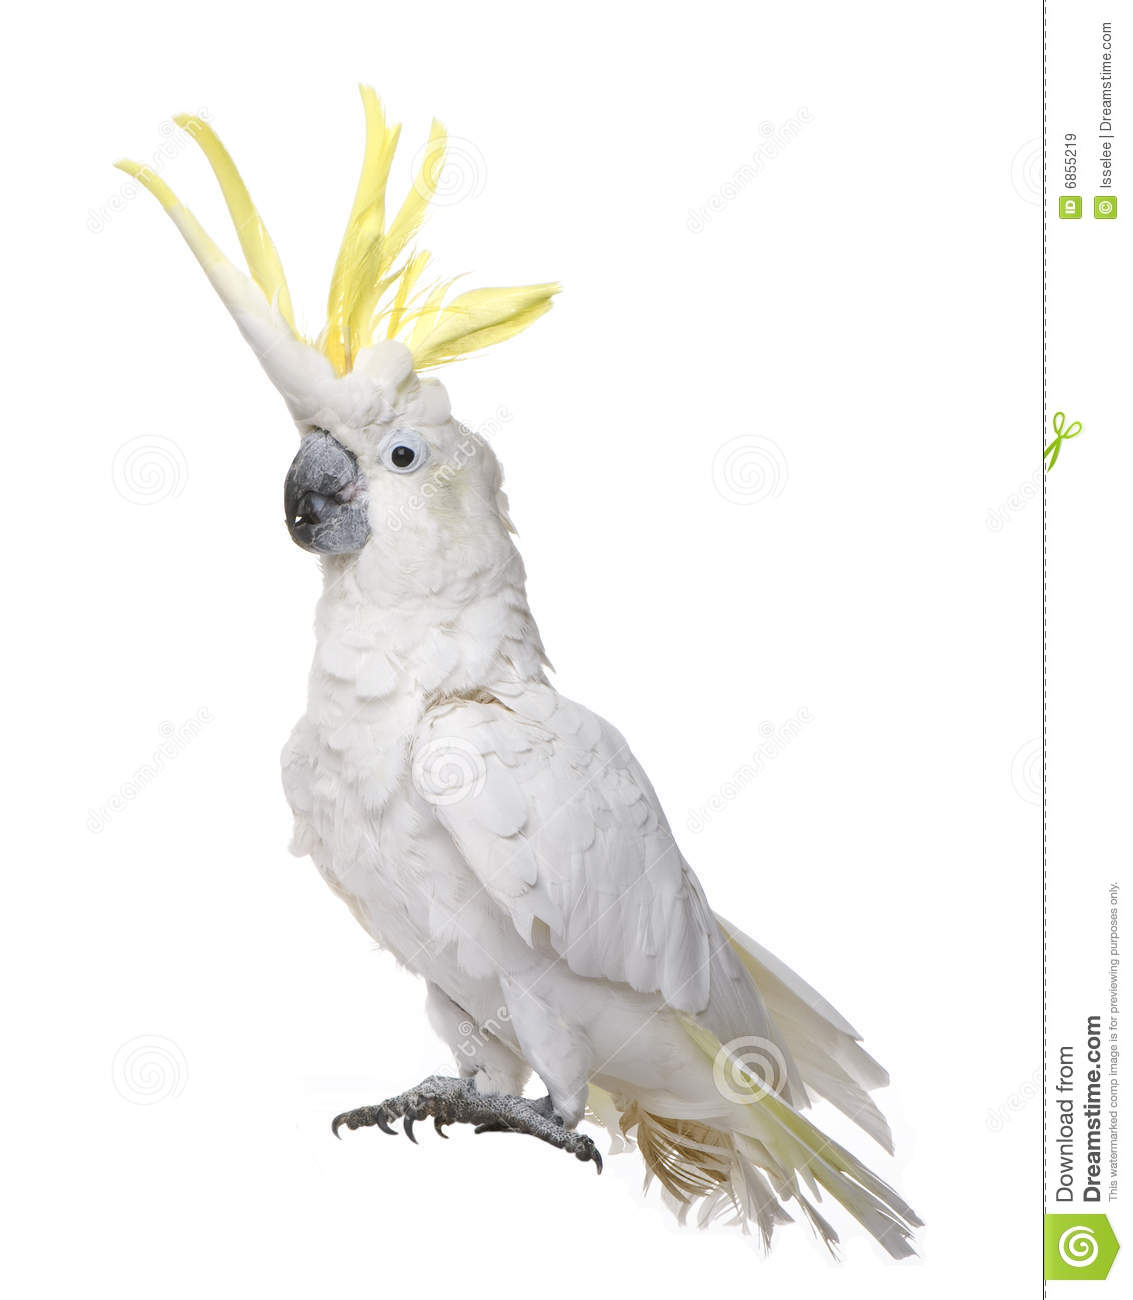 сера galerita cacatua crested cockatoo